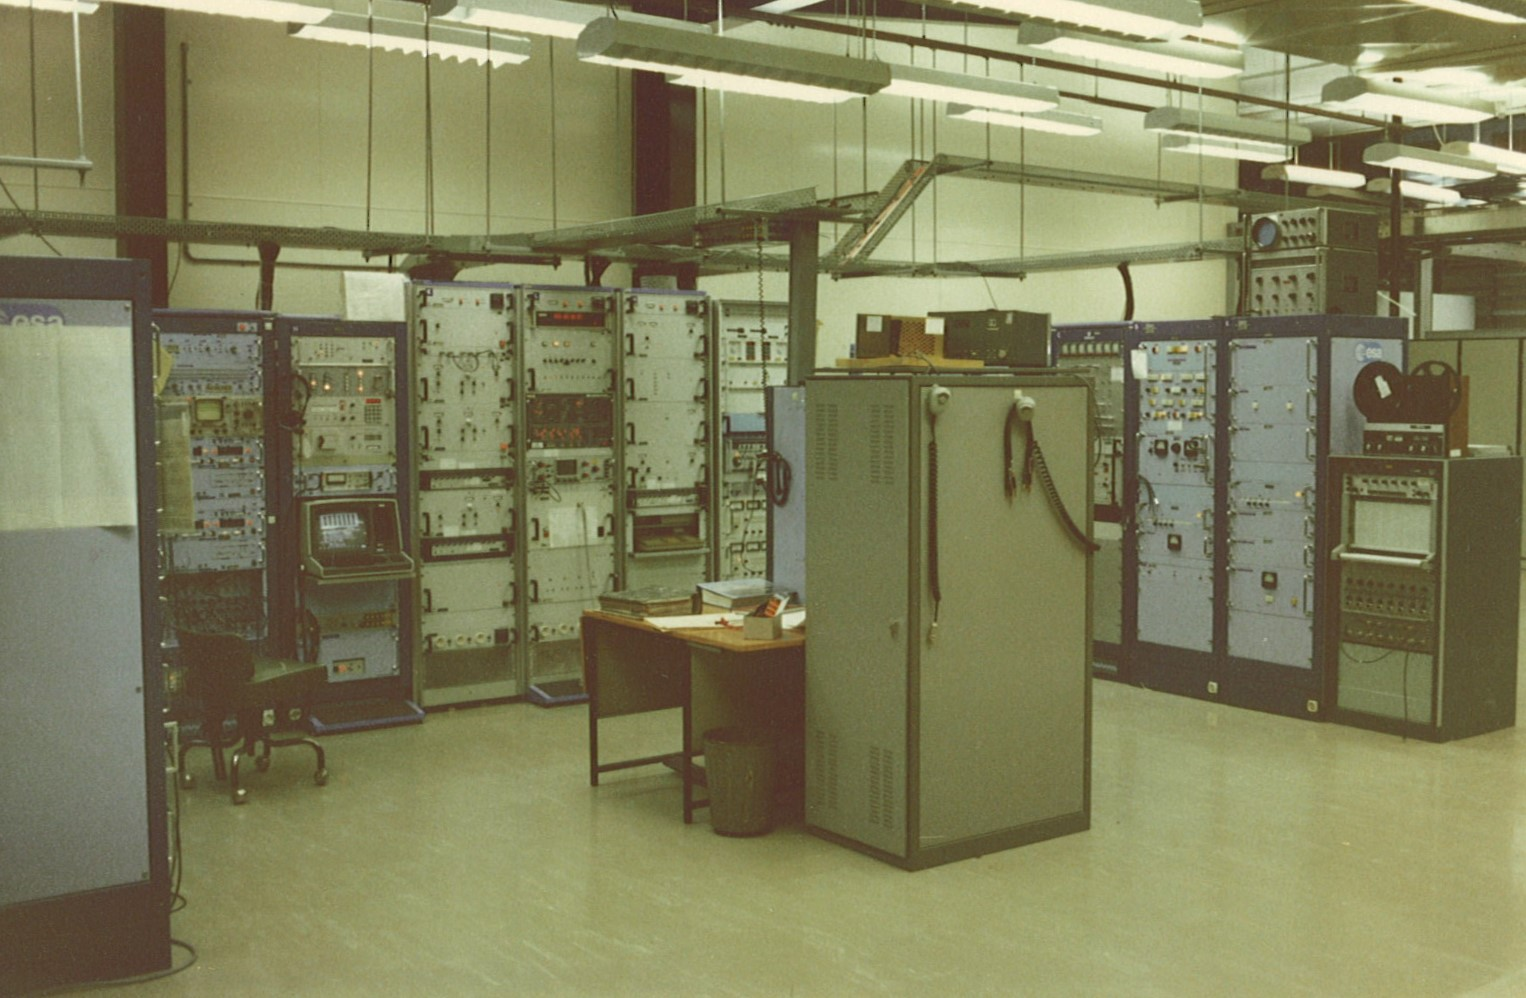 Room of large electronic devices.